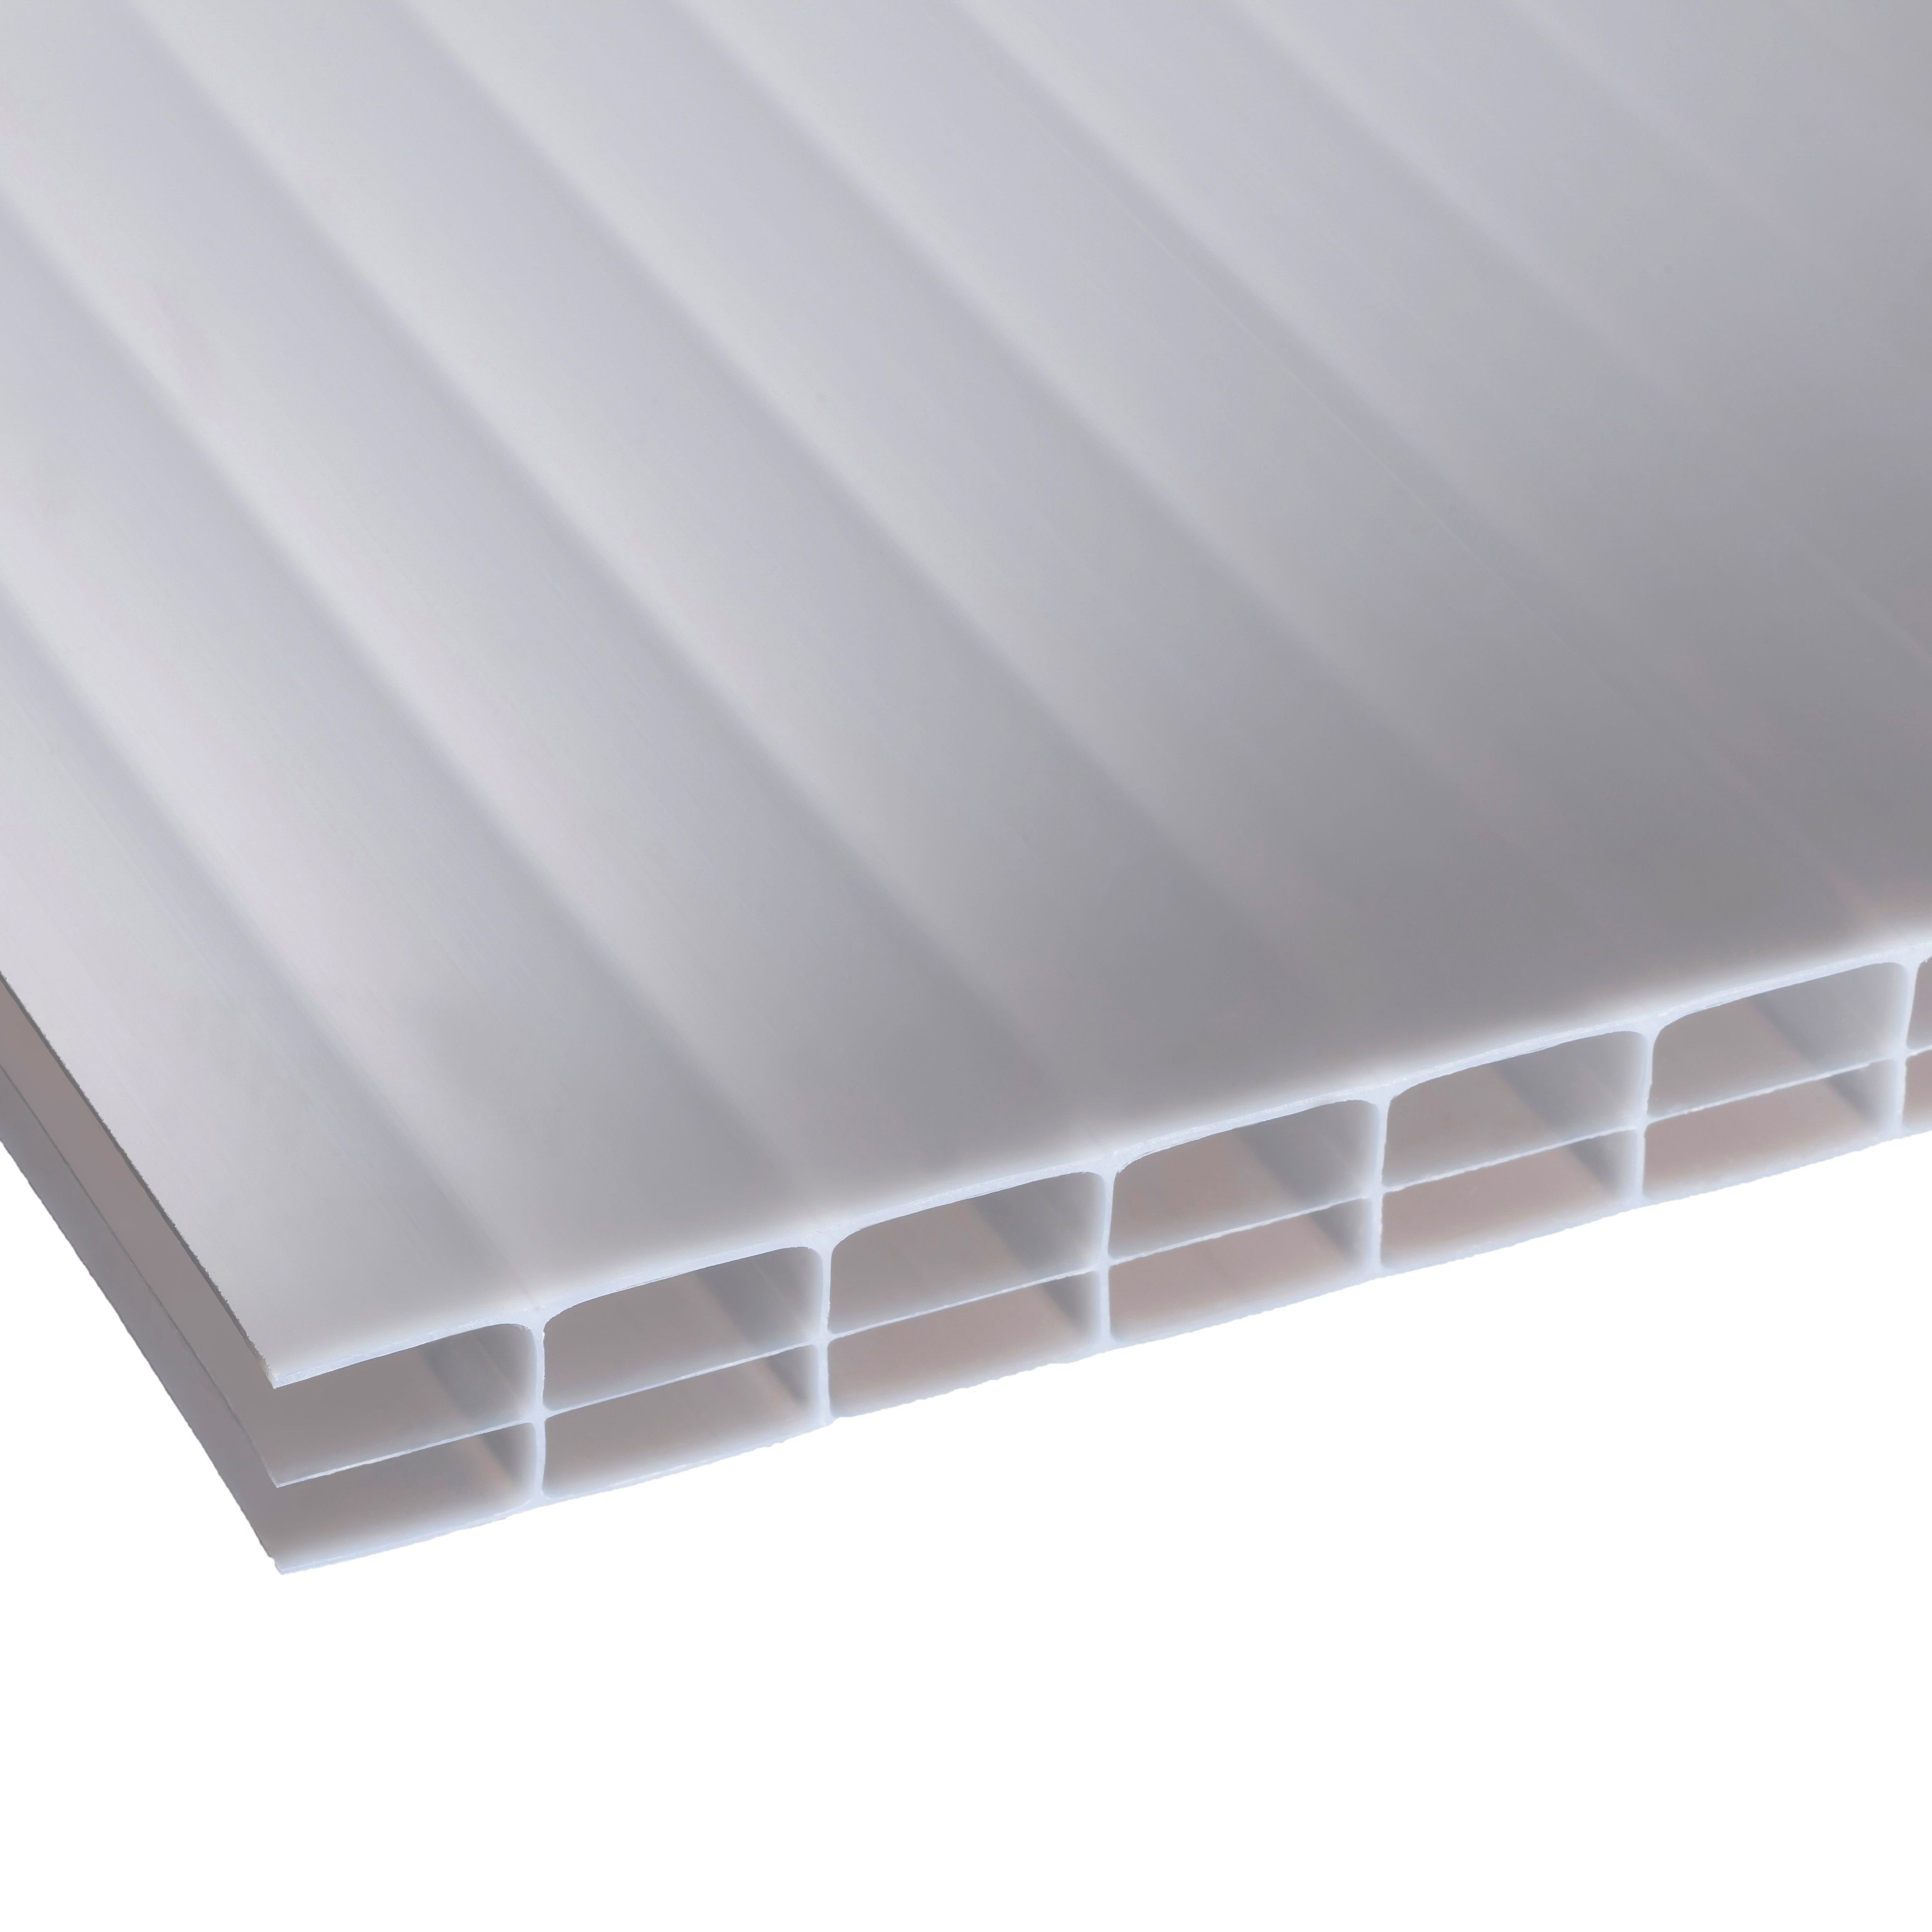 Opal Multiwall Polycarbonate Roofing Sheet 2.5m X 700mm, Pack Of 5